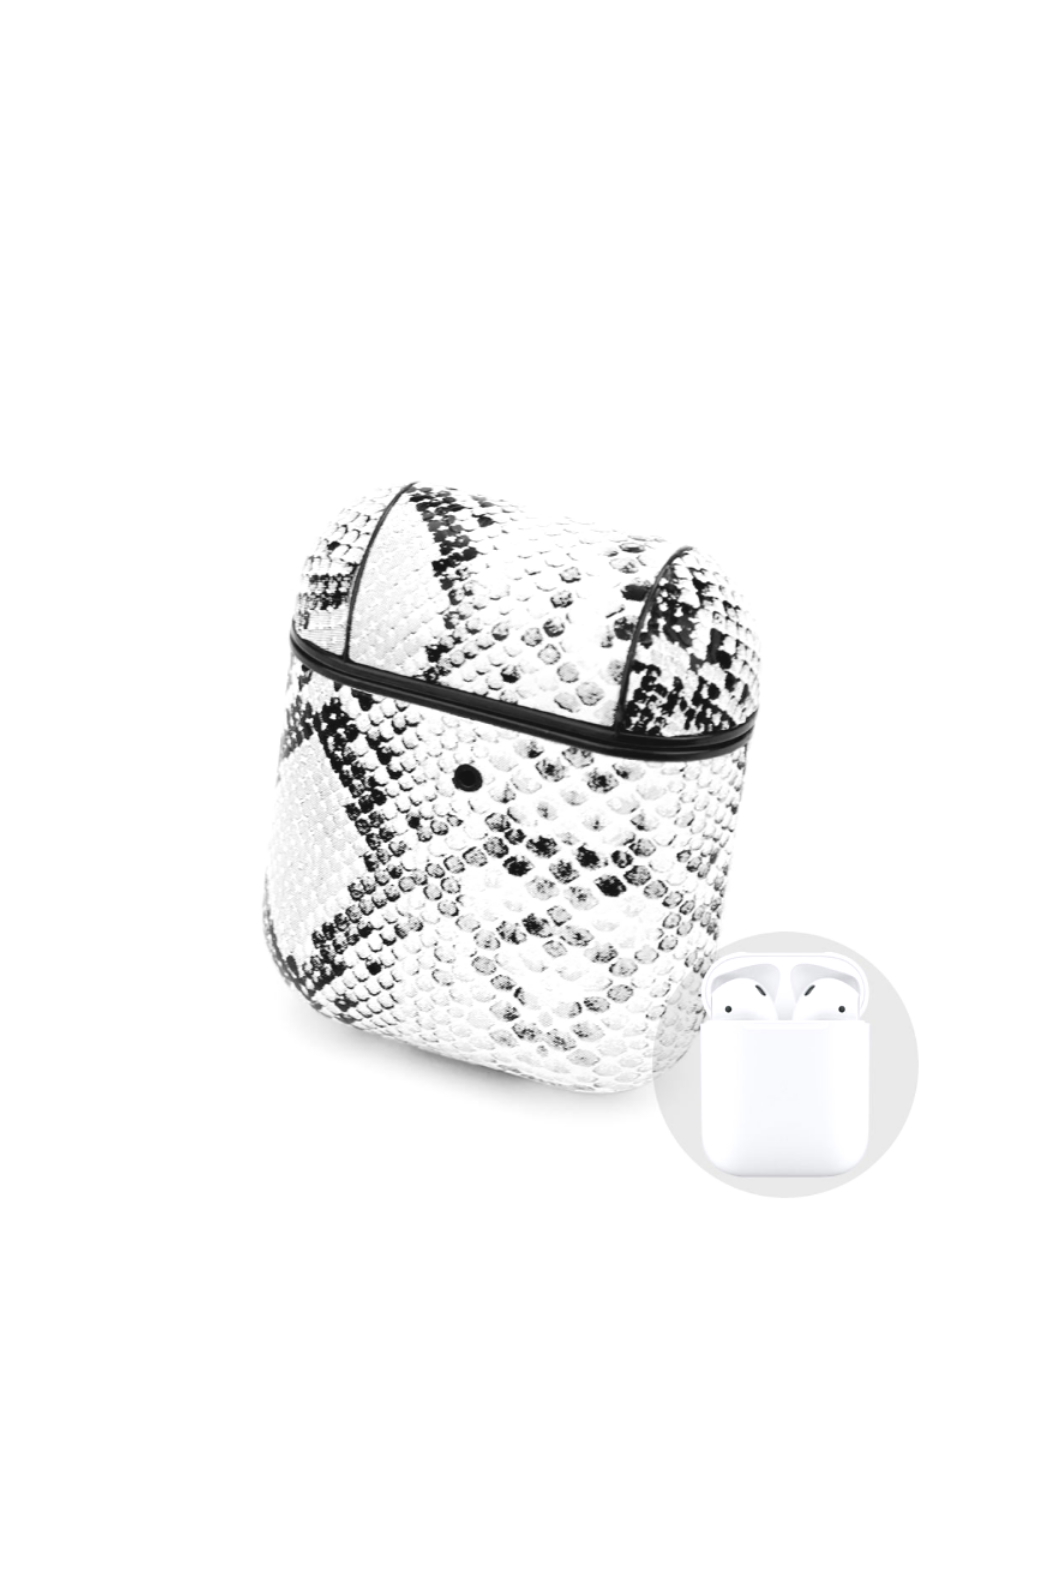 Private Label Python Pattern Air Pod Case/key chain - Front Cropped Image